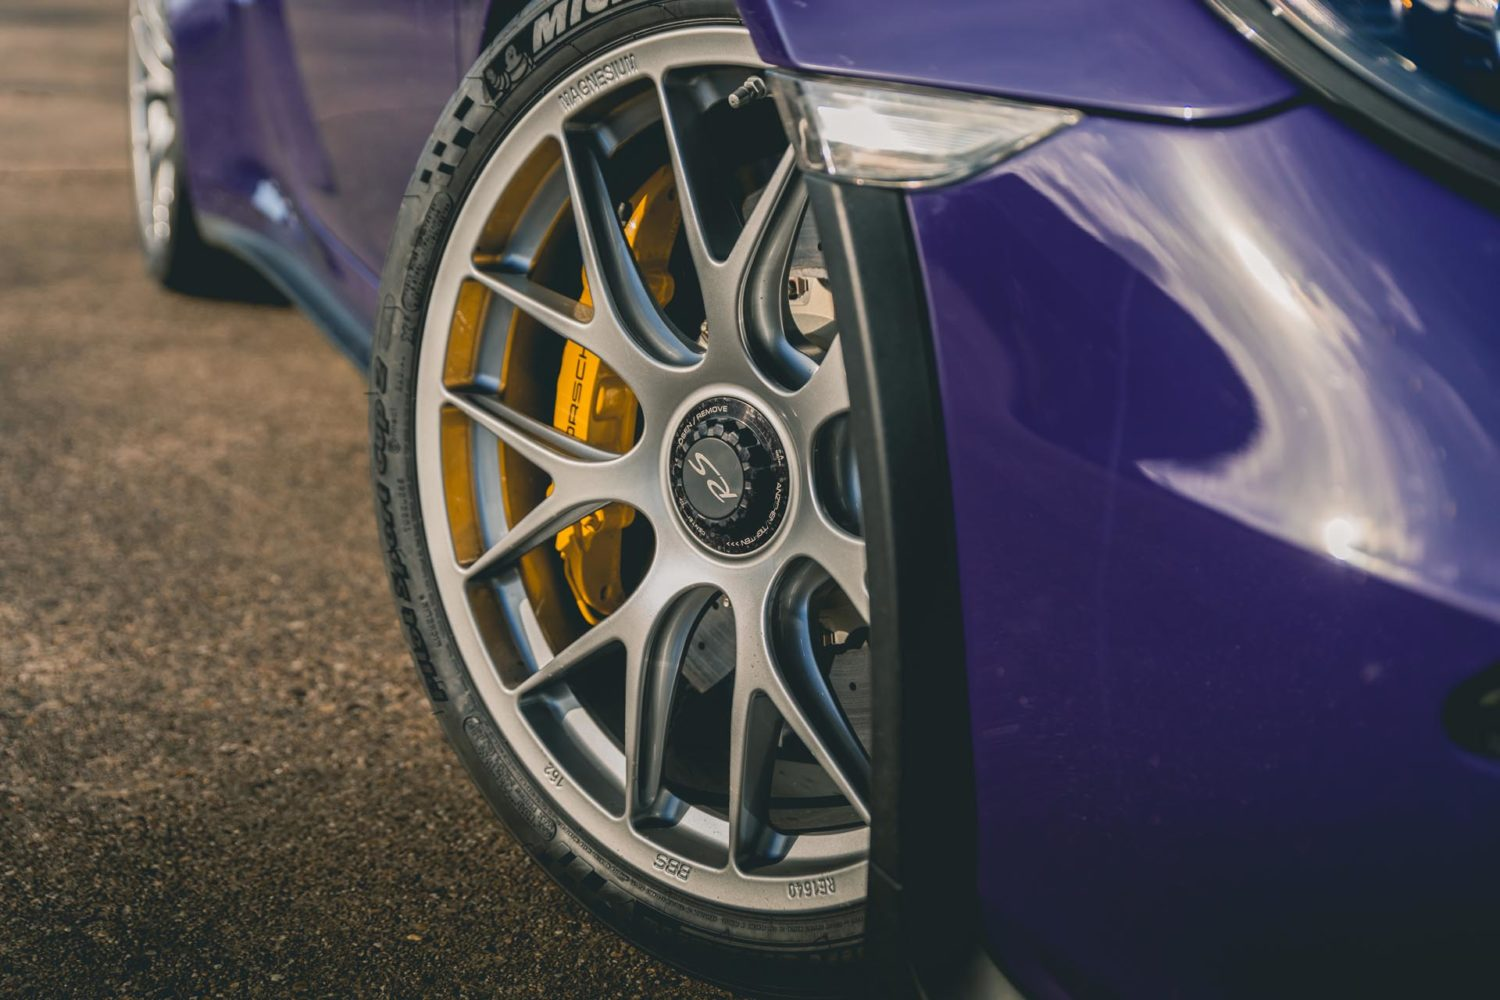 manthey racing 991.1 gt3rs wheel